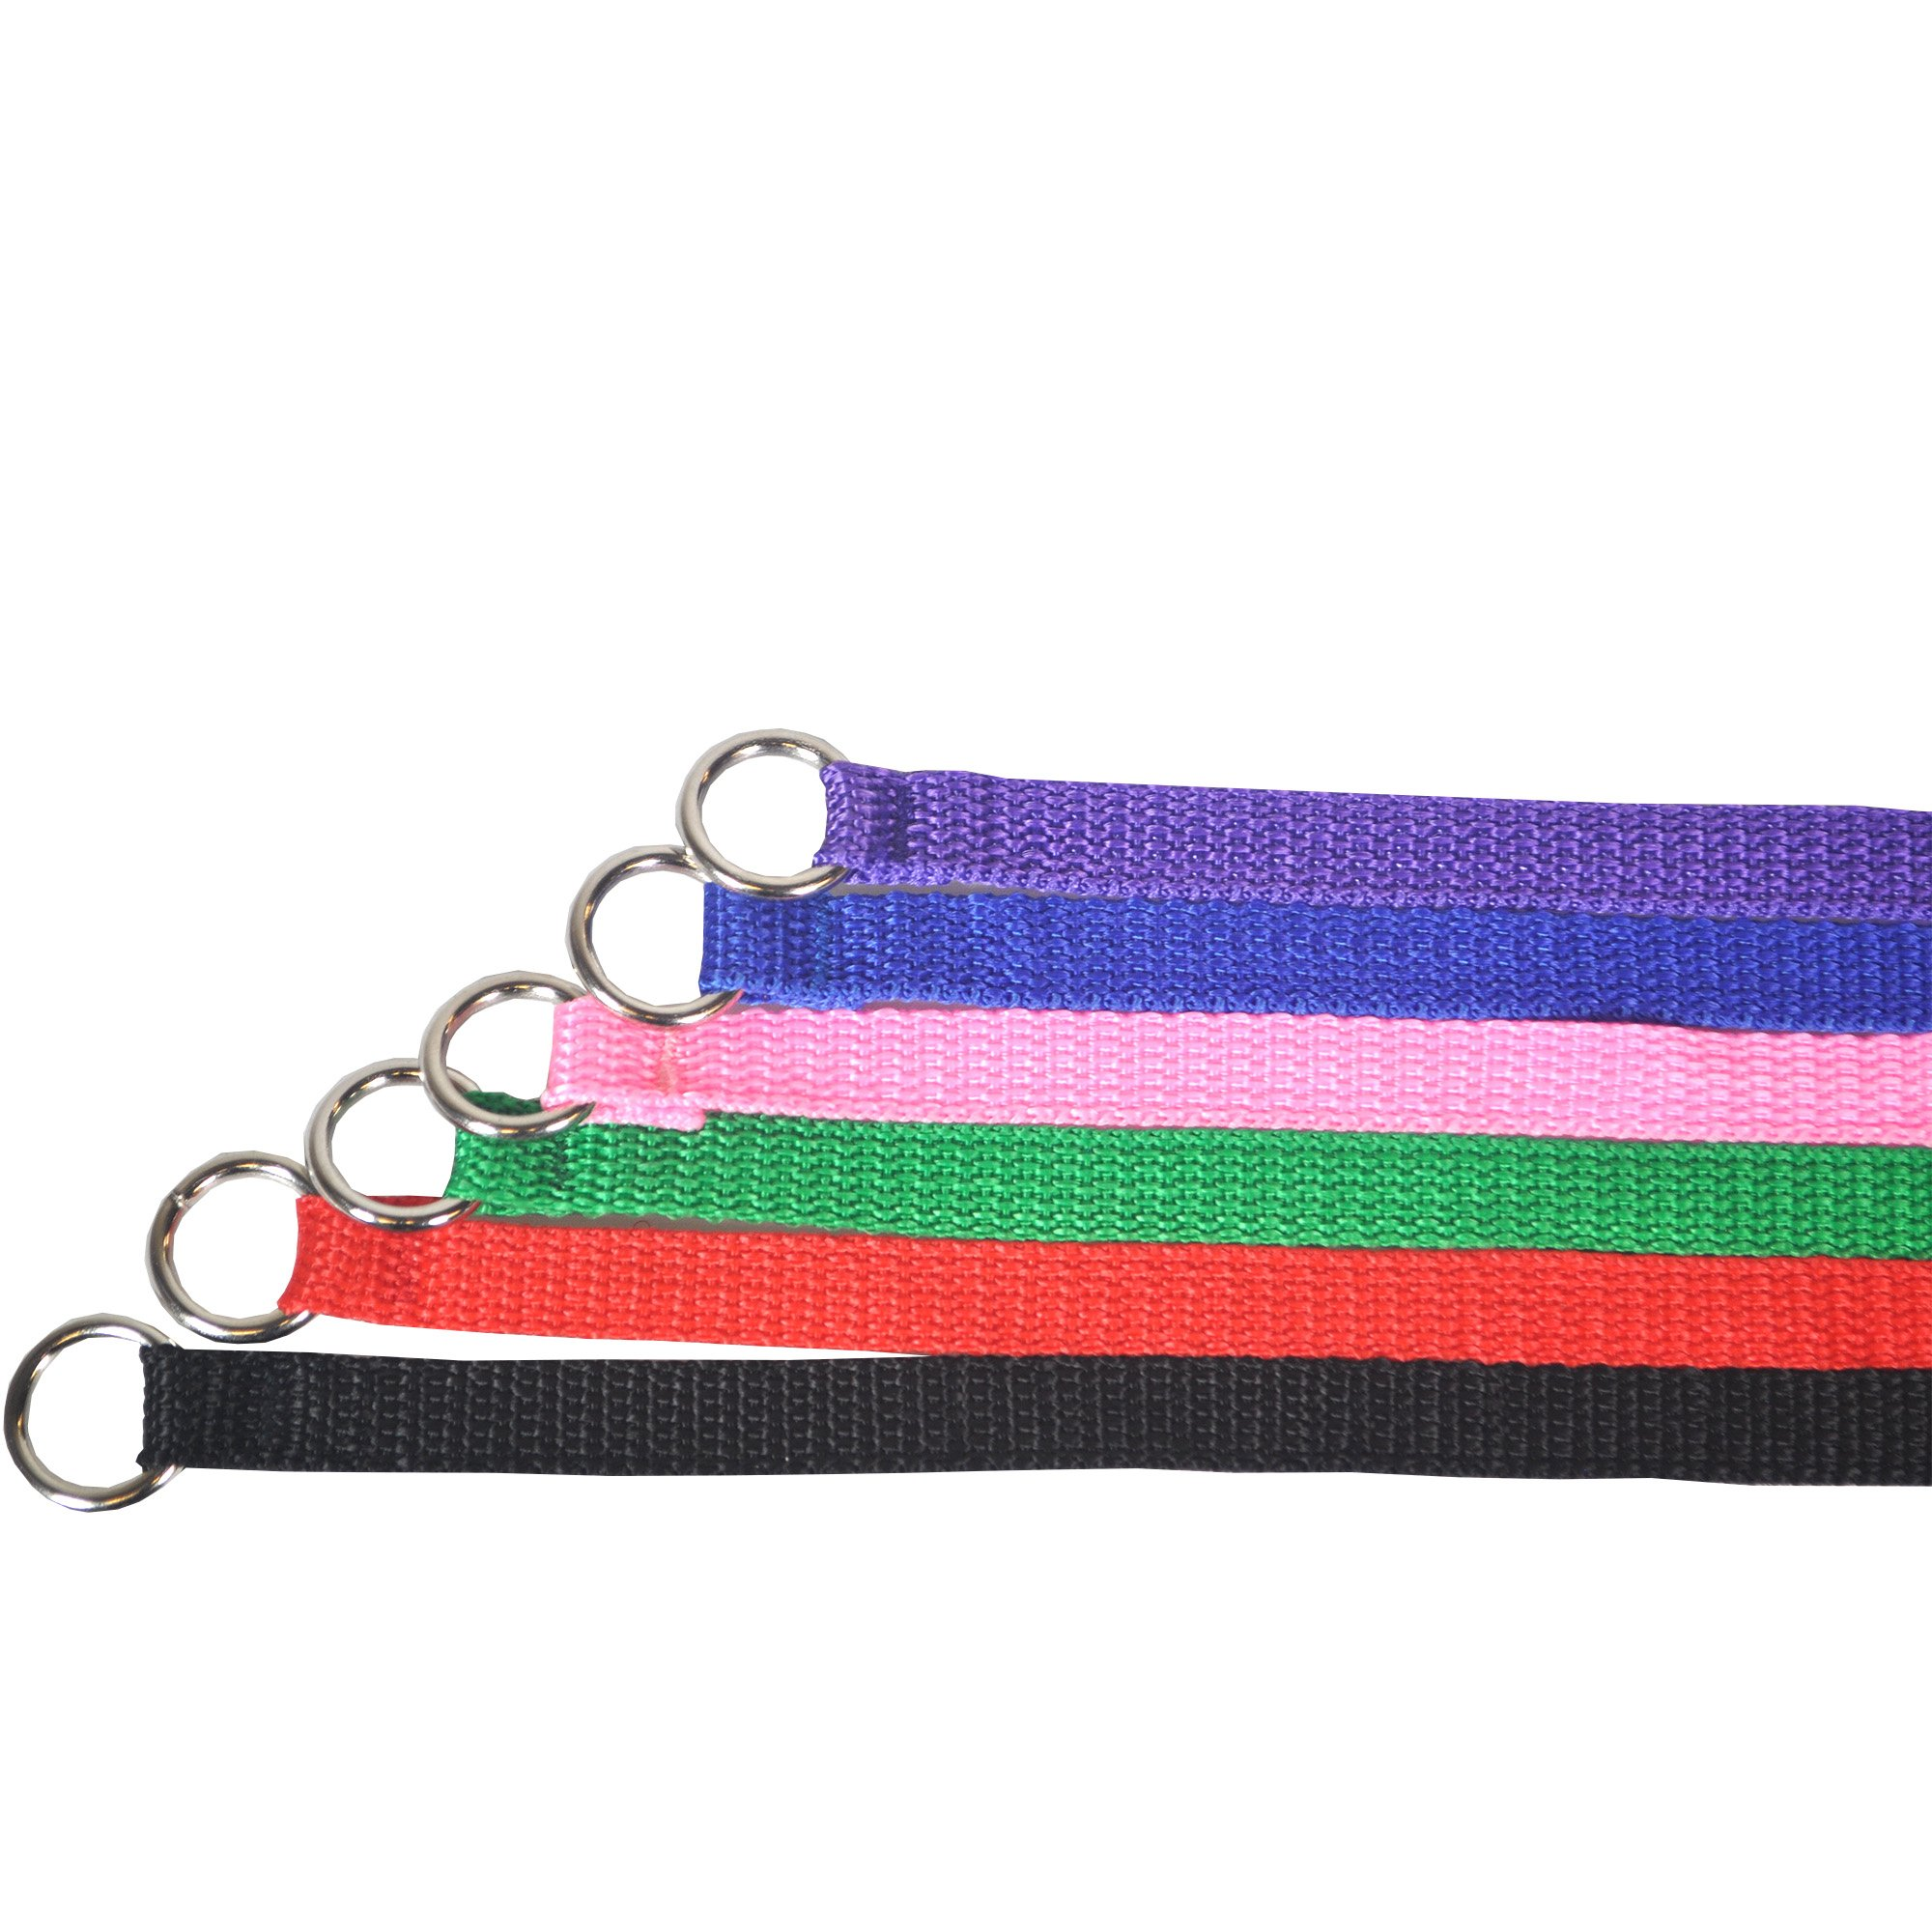 Downtown Pet Supply Slip Leads, Kennel Leads with O Ring for Dog Pet Animal Control Grooming, Shelter, Rescues, Vet, Veterinarian, Doggy Daycare - 4 foot Length x 1/2 inch Width, by (120 Pack)